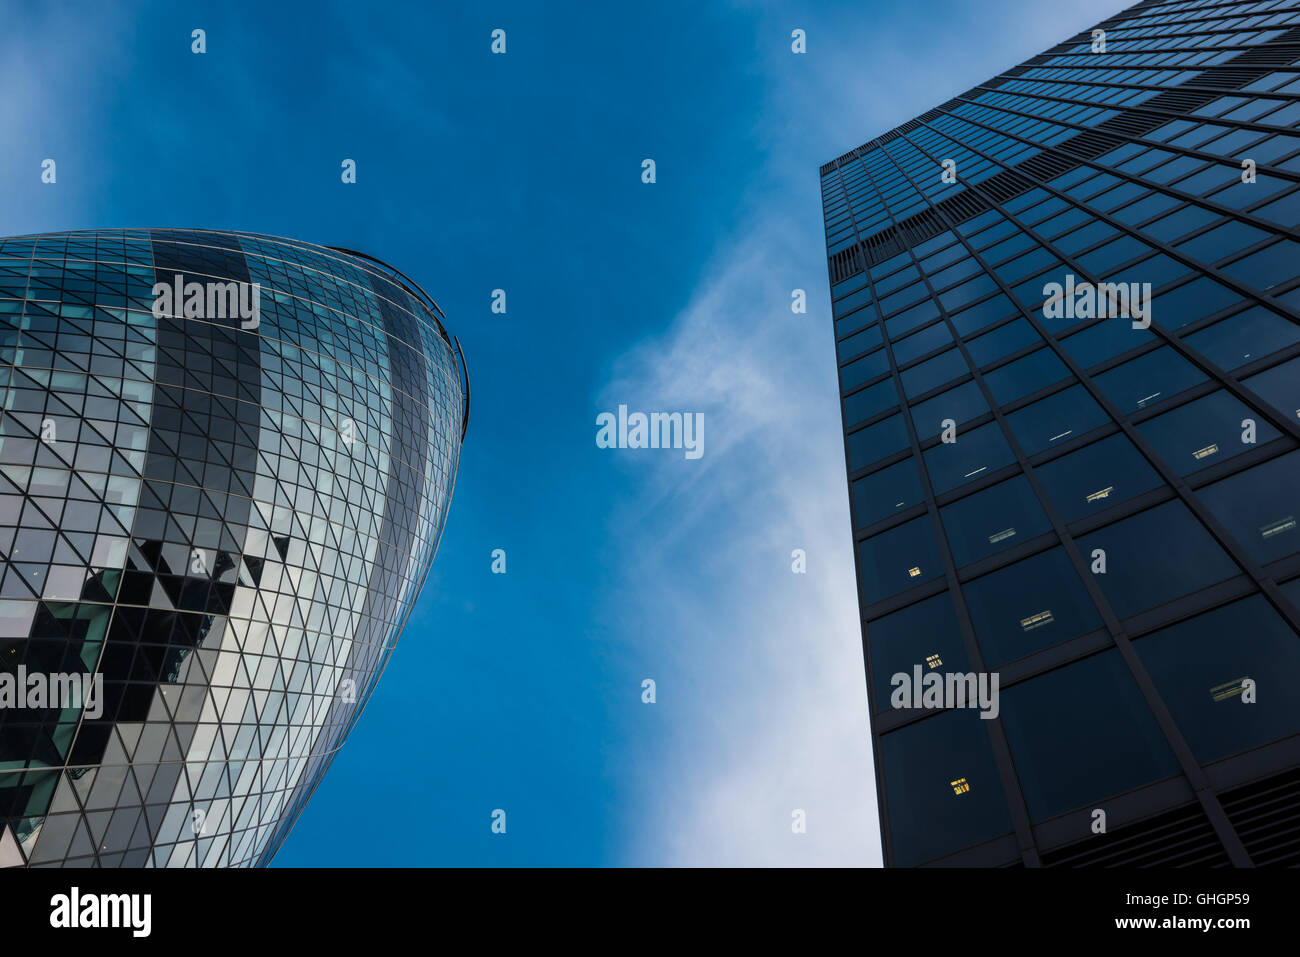 Le Gherkin office building, City of London, Londres, Royaume-Uni Photo Stock